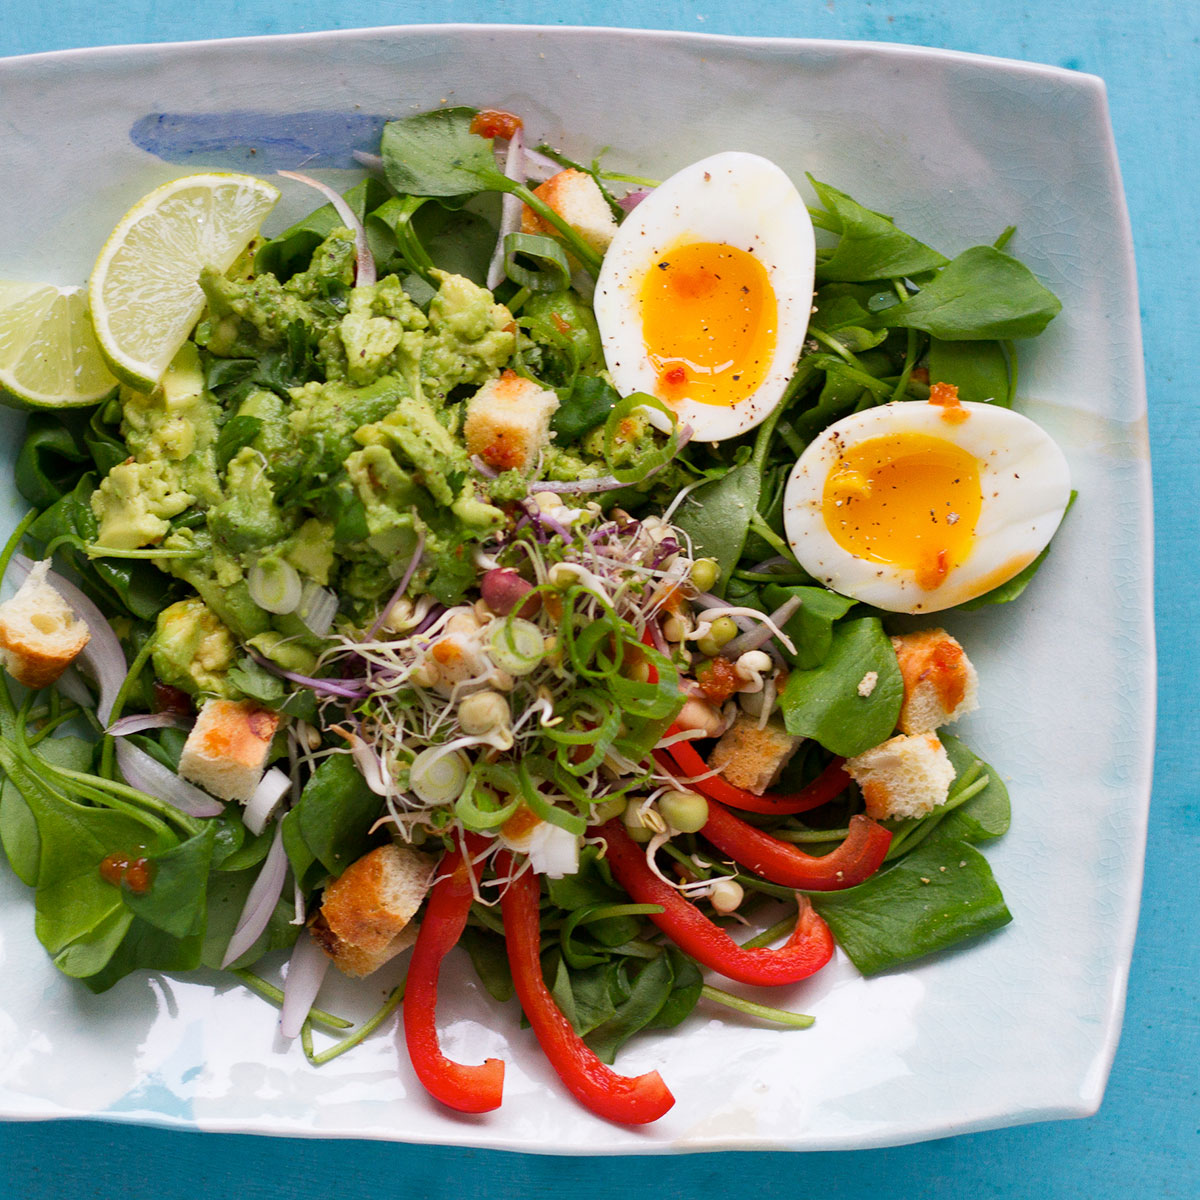 Sprouts (ontbijt)salade